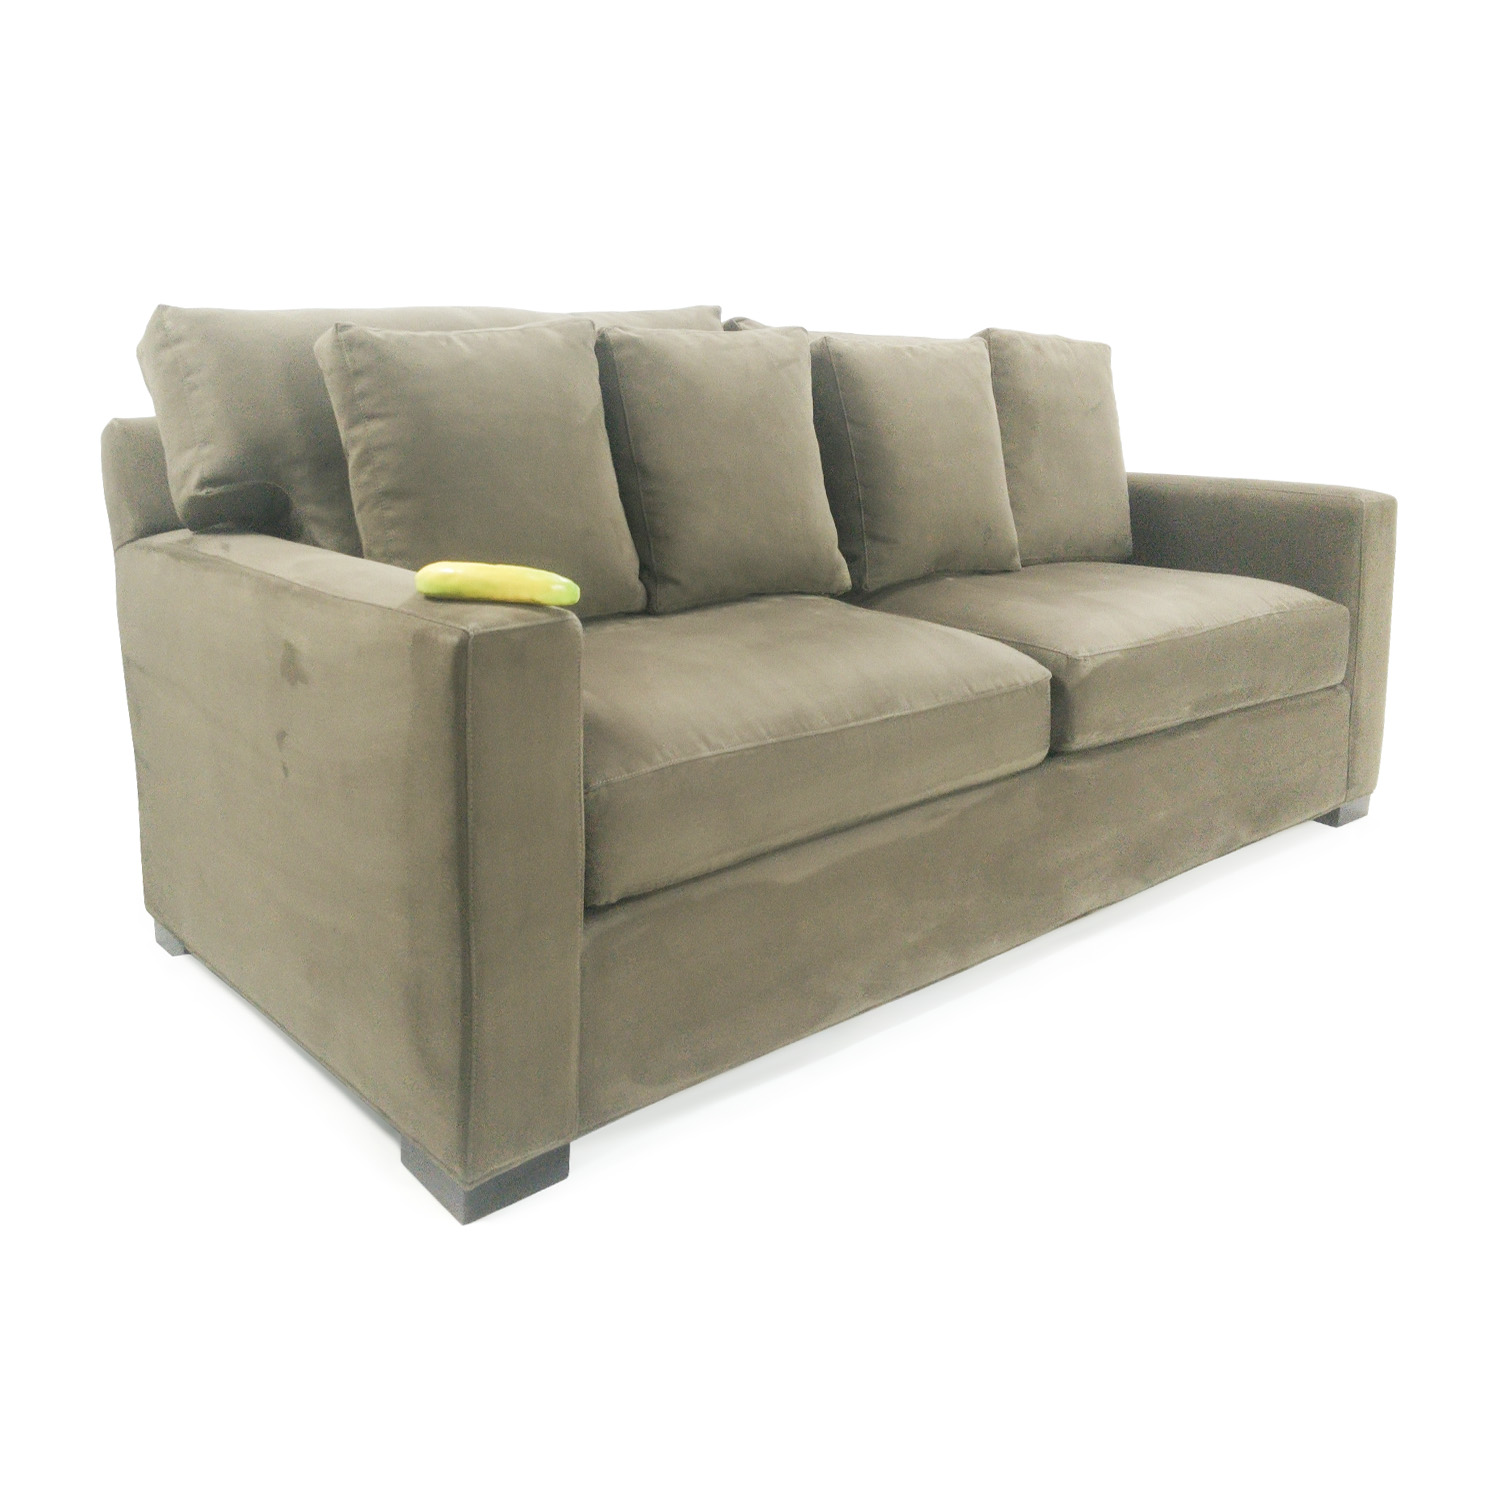 crate and barrel leather sofa bed slipcovered canada axis ii brown 3 seat thesofa